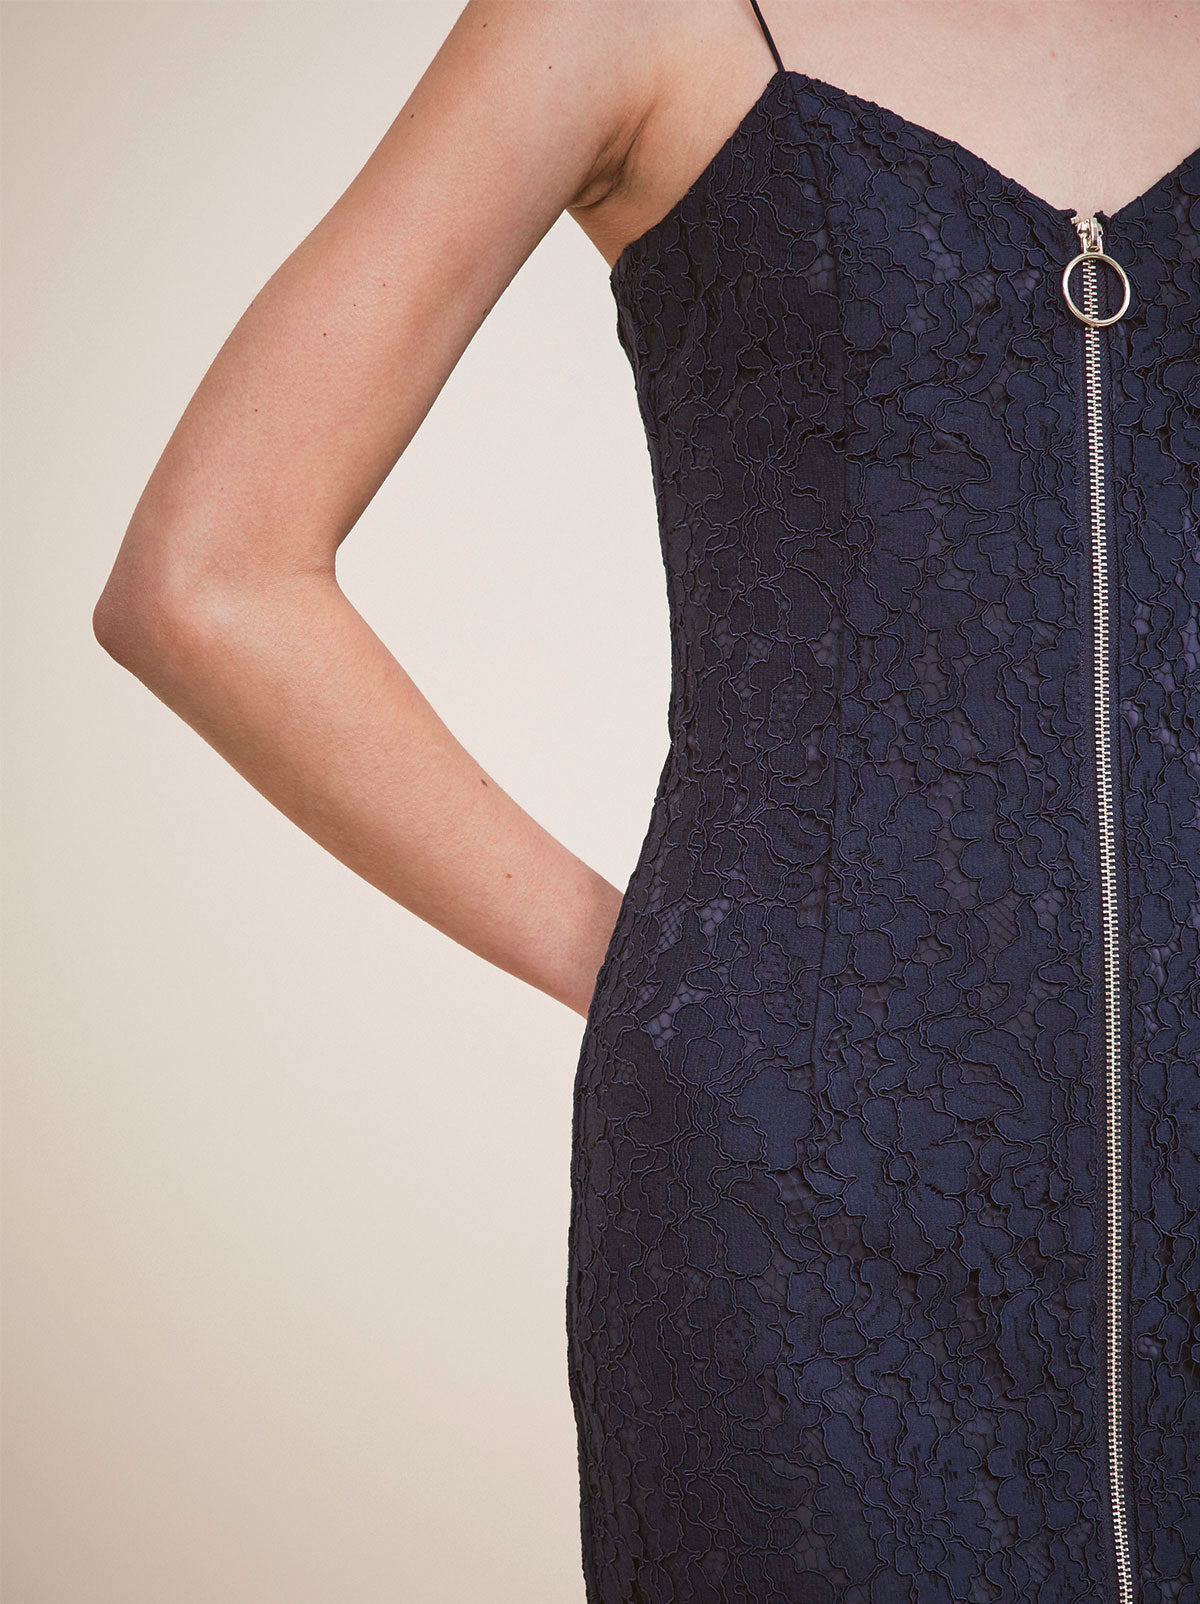 Petipa Navy Lace Cocktail Dress by KITRI Studio